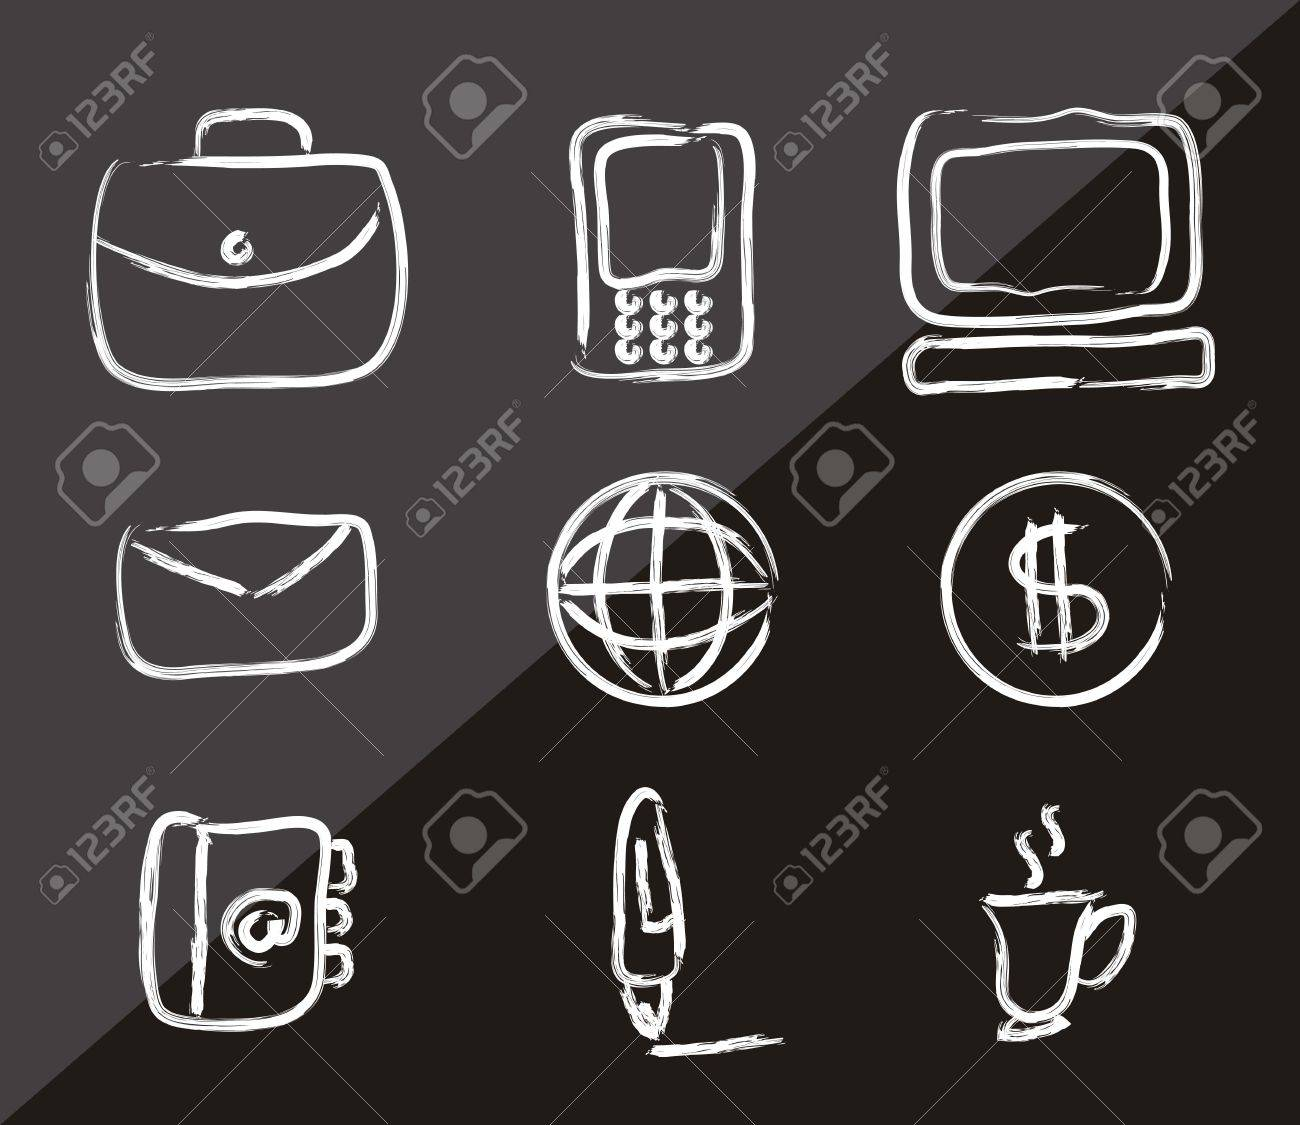 business icons over black background. vector illustration Stock Vector - 18211660